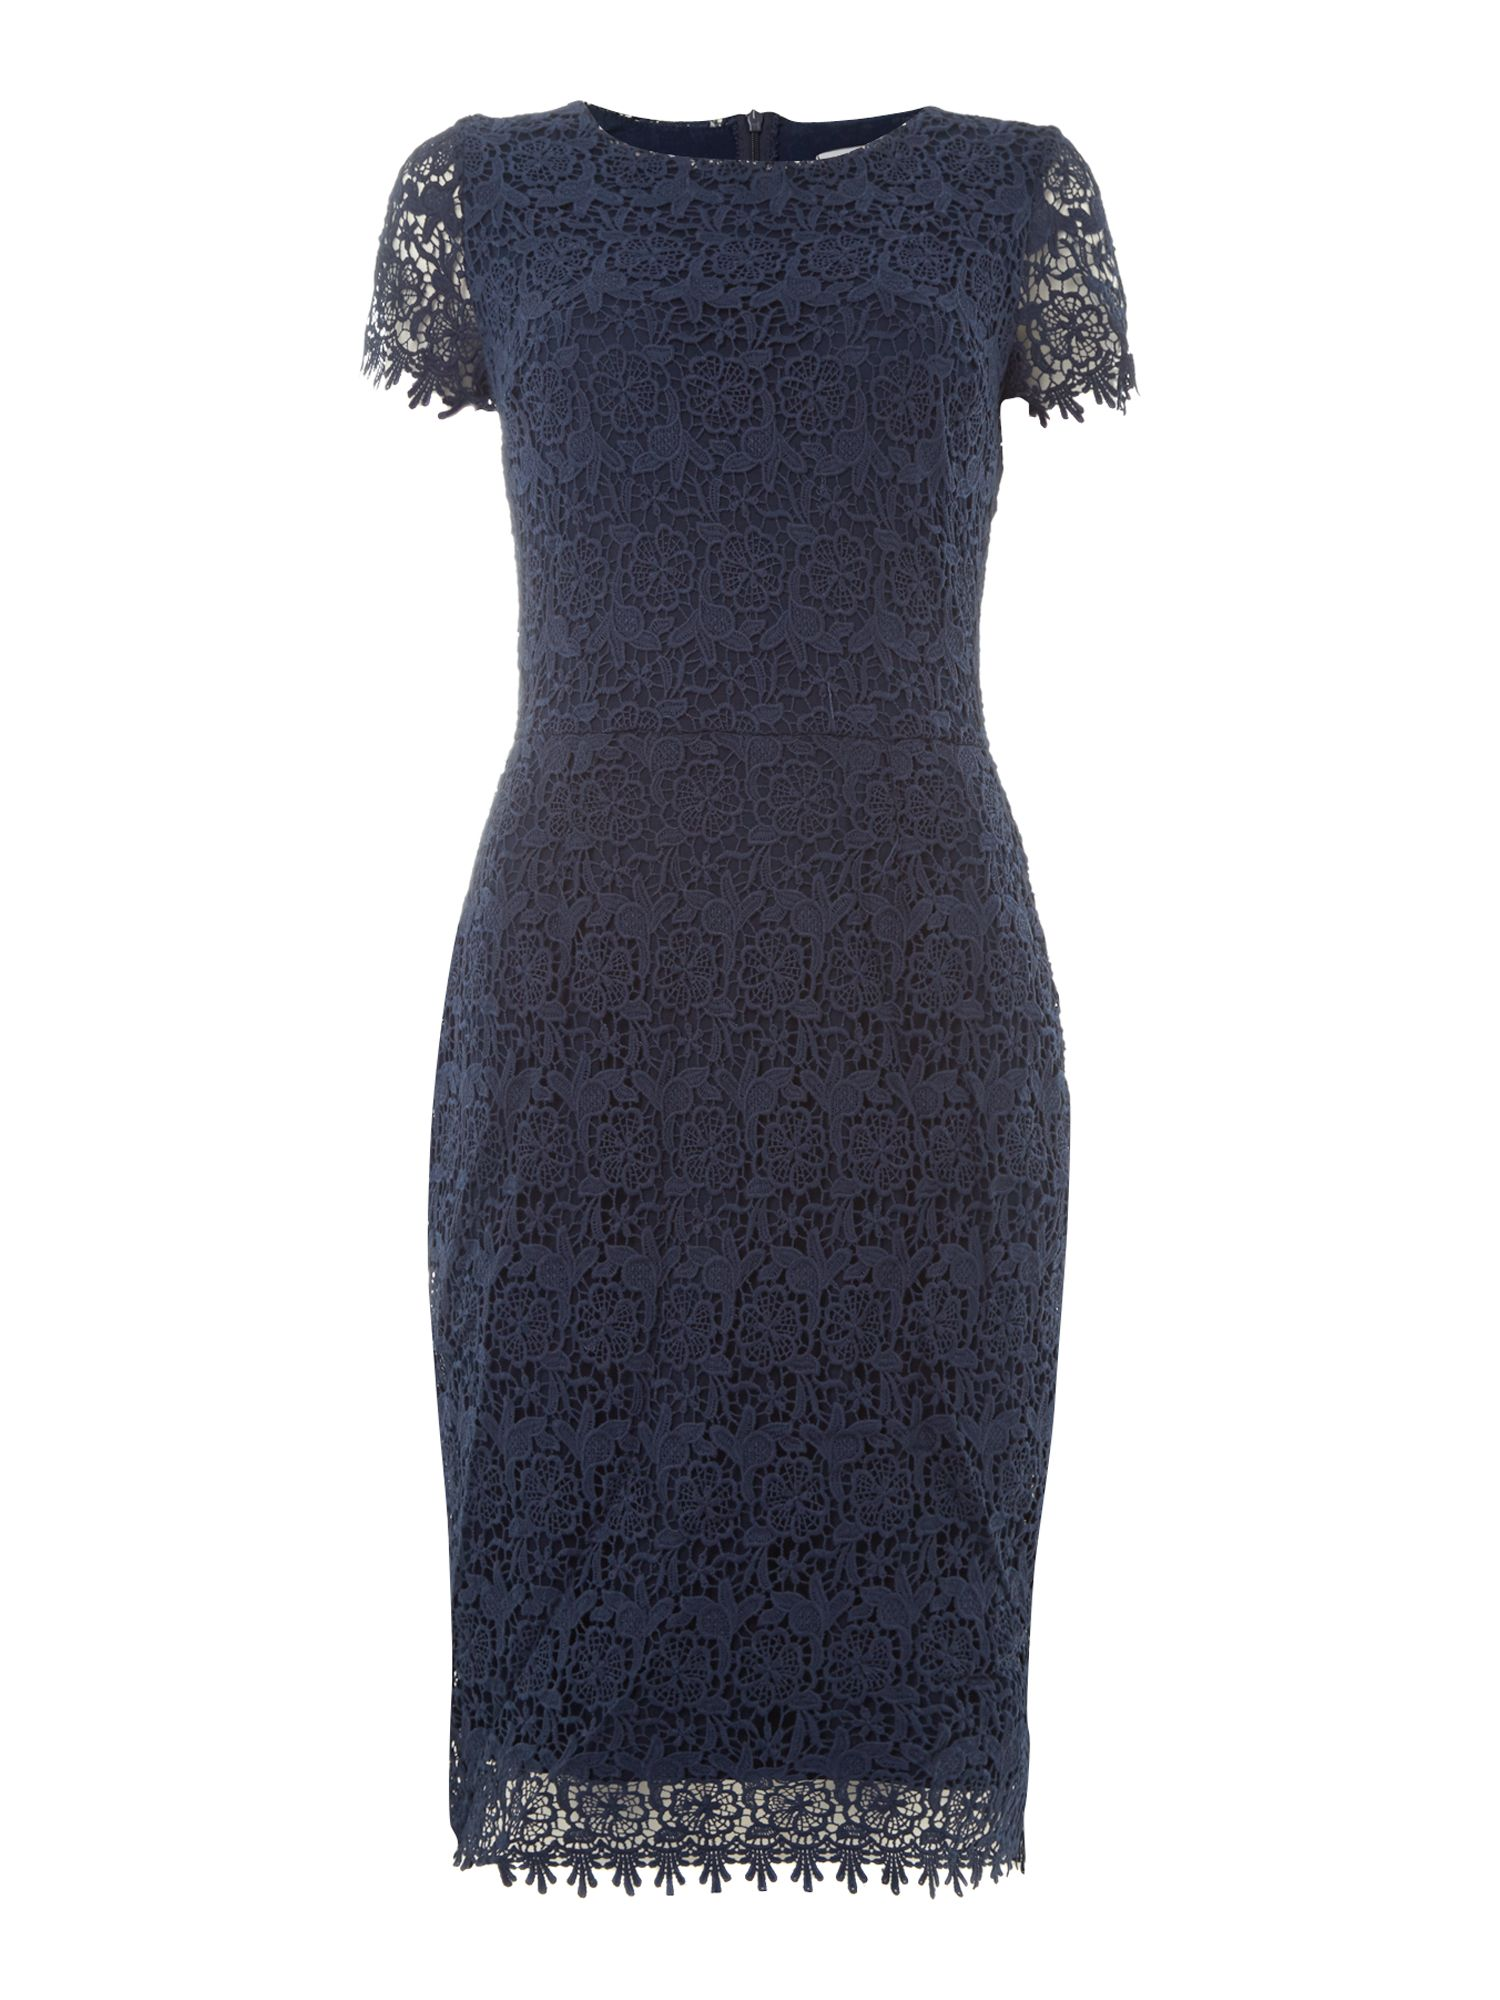 Short sleeved lace midi dress